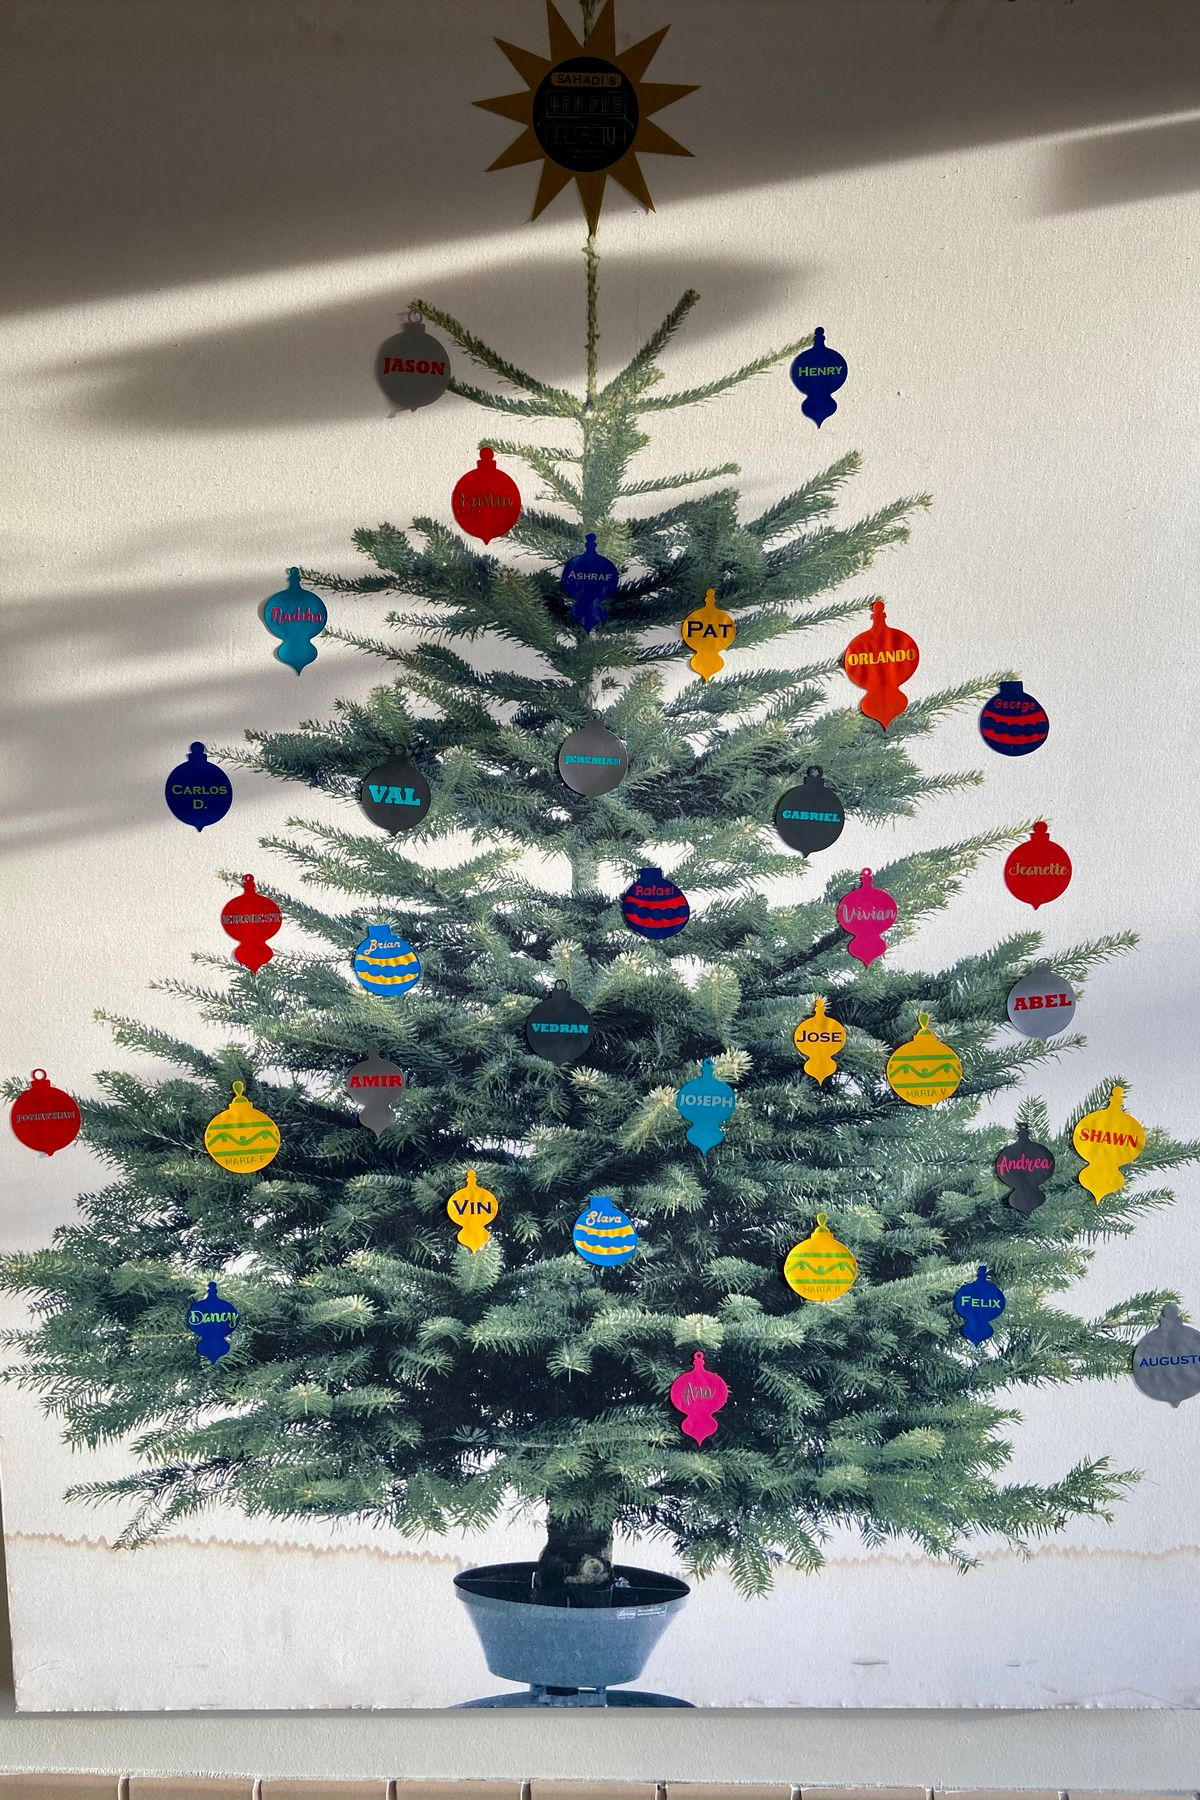 Sahadi's owners created a Christmas tree picture with the names of their workers.